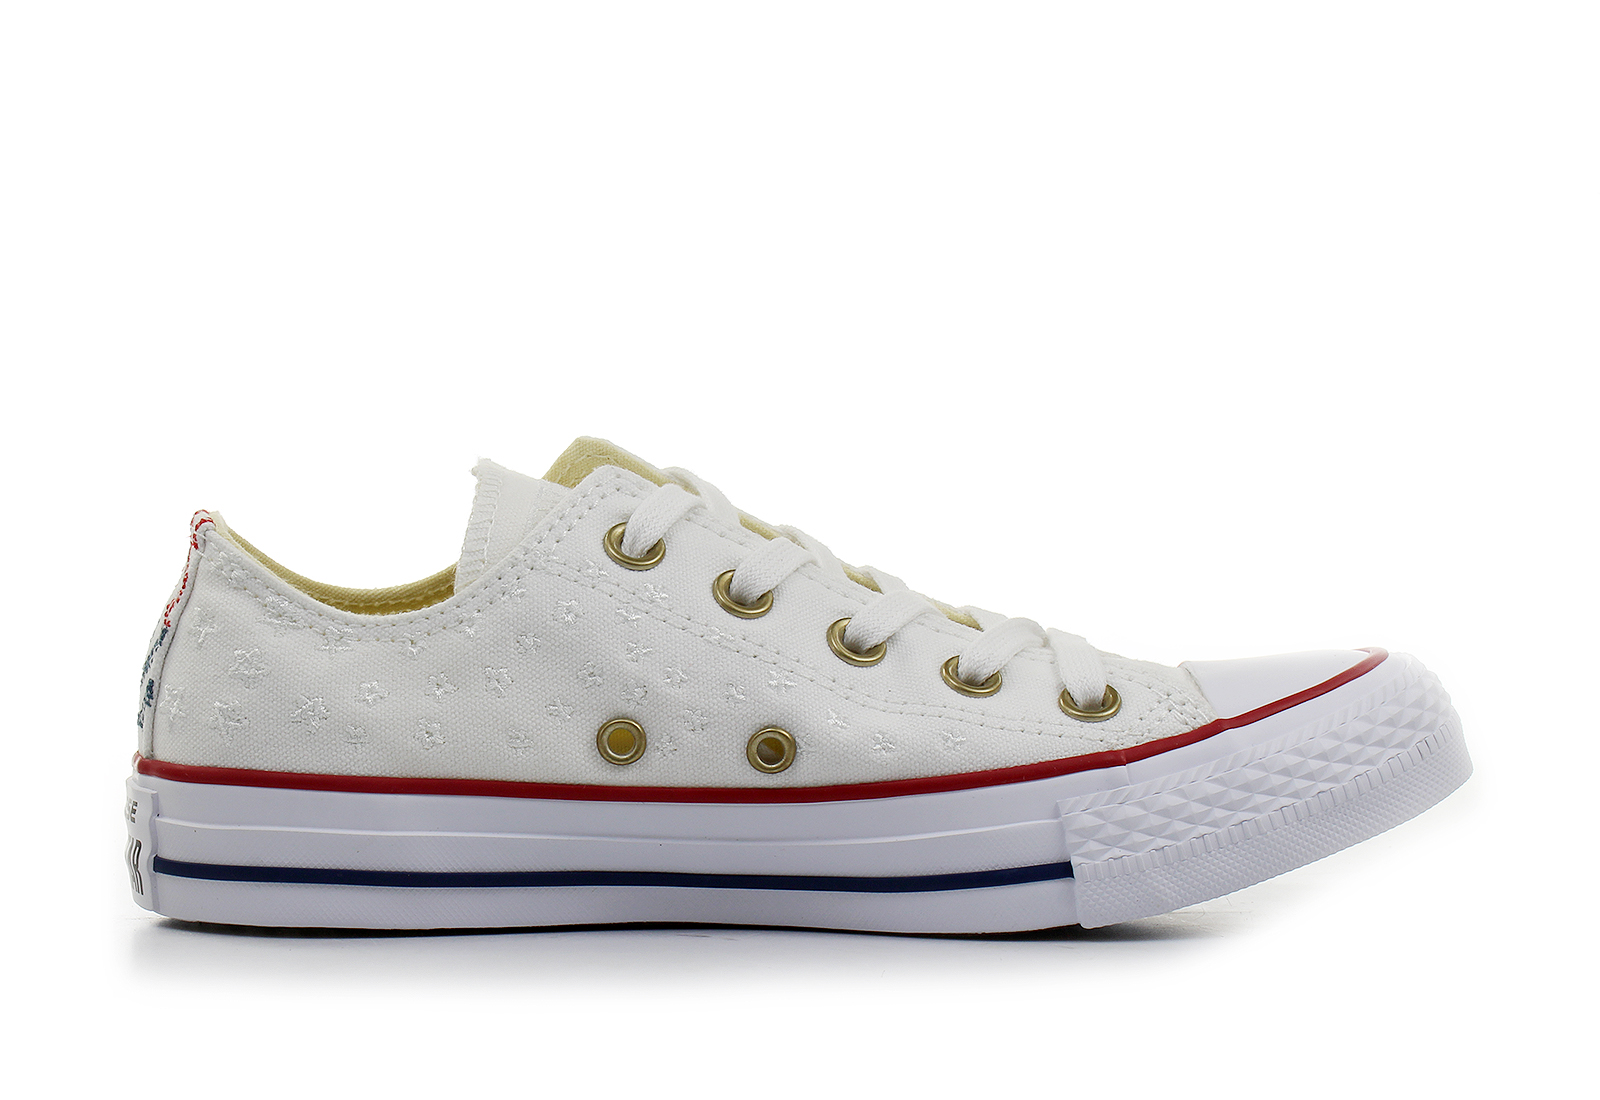 Converse Sneakers - Chuck Taylor All Star Specialty Ox - 555882C ... 702fa959c0fc